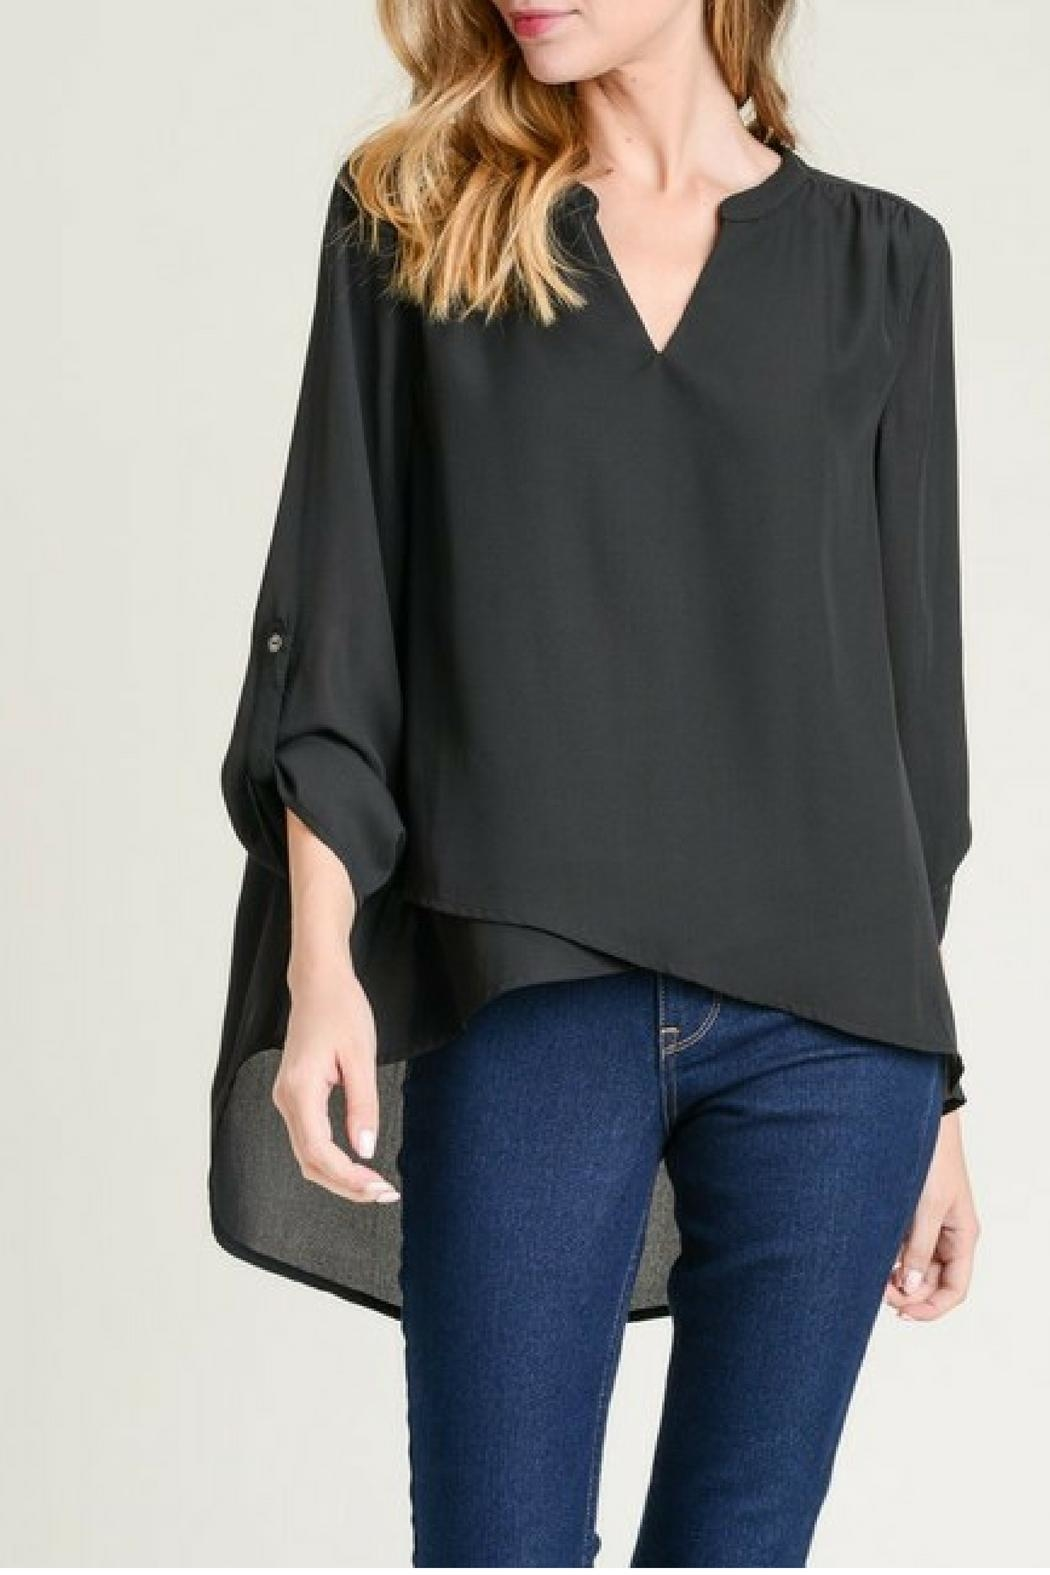 Jodifl Roll-Up Sleeve Blouse - Main Image